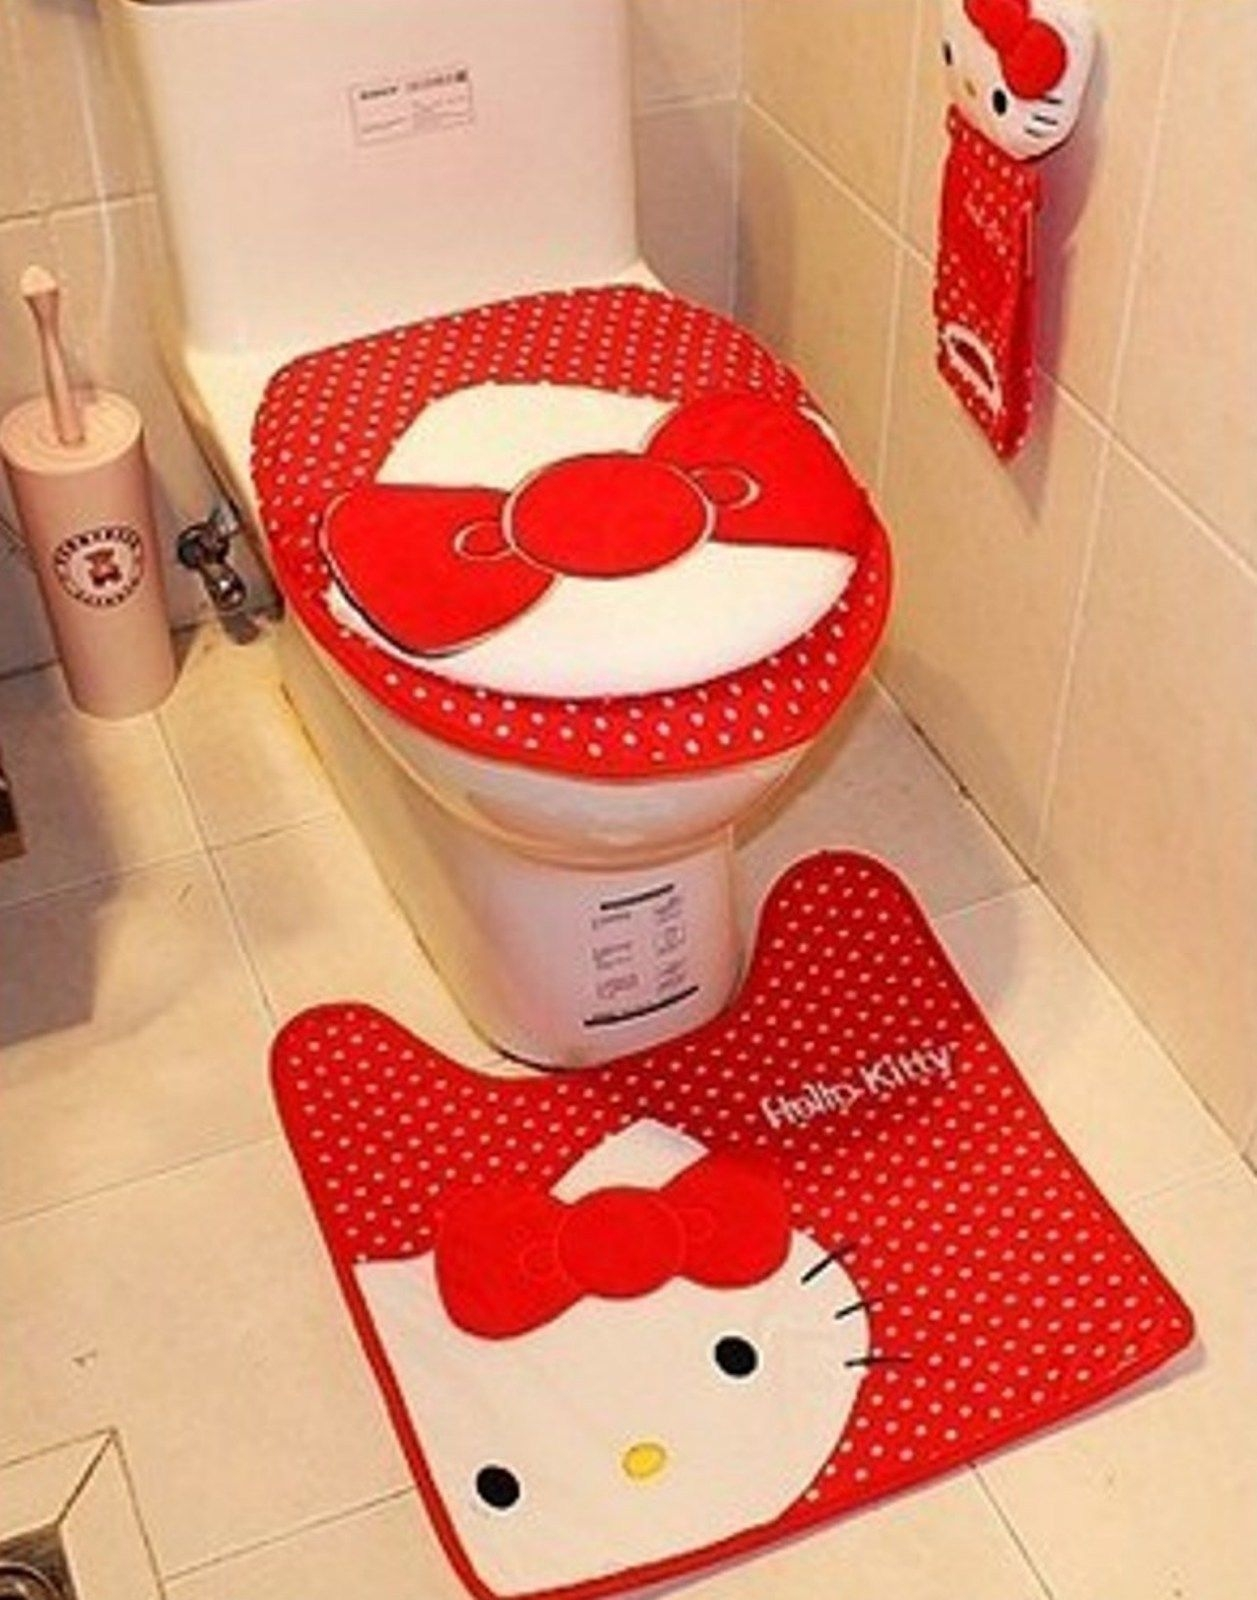 Permalink to Bathroom Rugs And Toilet Seat Covers